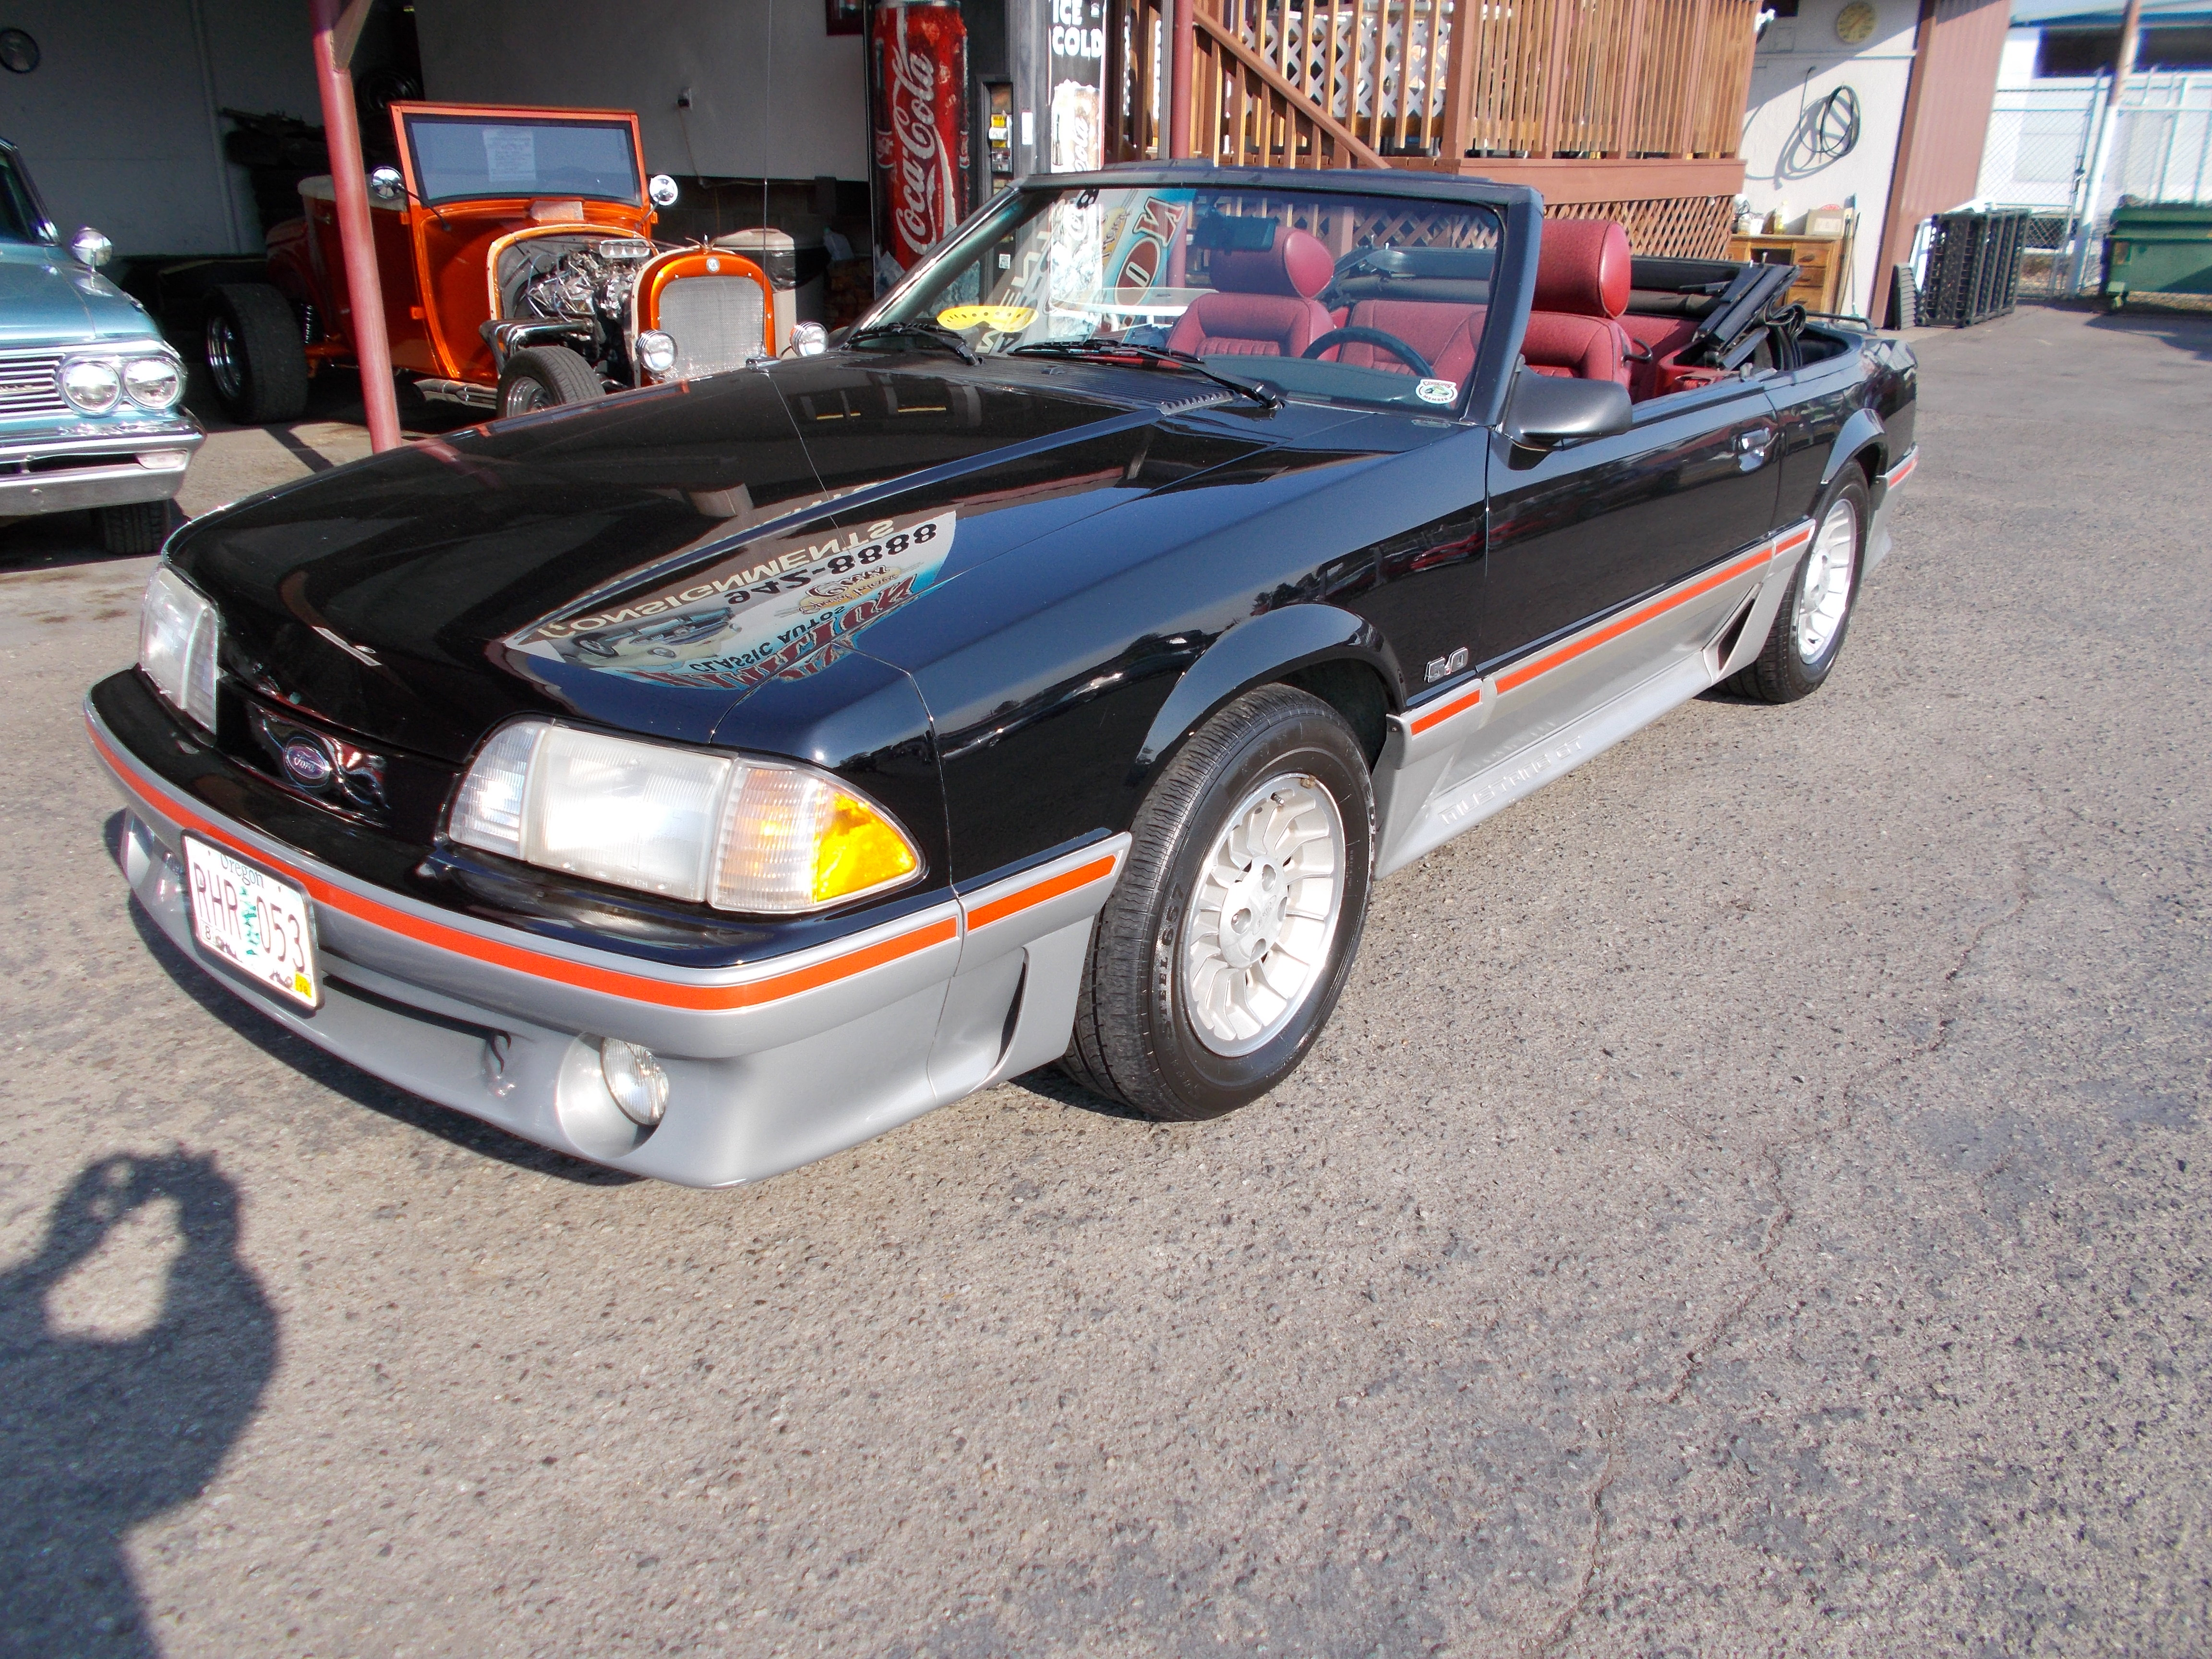 Hamilton Auto Sales 1987 Toyota Pickup Undercarriage Wiring Harness Ford Mustang Gt Convertible 50 Liter V 8 Transmission 91153 Miles Suppose To Be Actual And The Car Looks Like They Are Correct